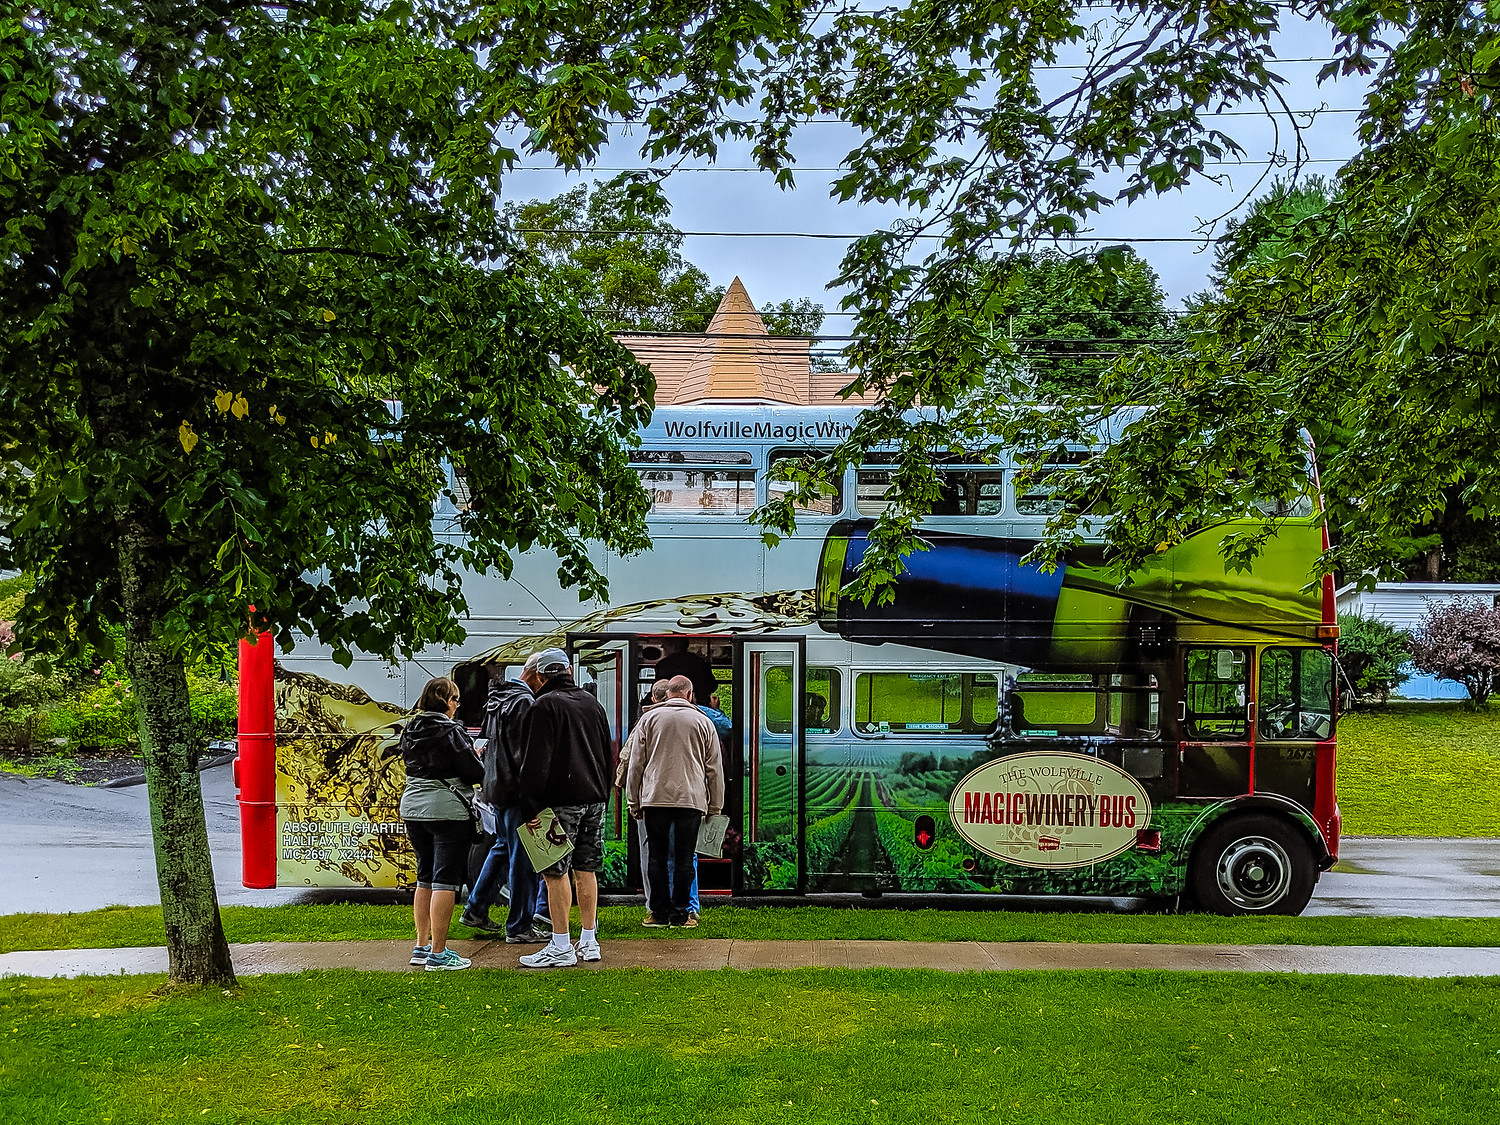 Magic Wine bus in Wolfville Nova Scotia Canada